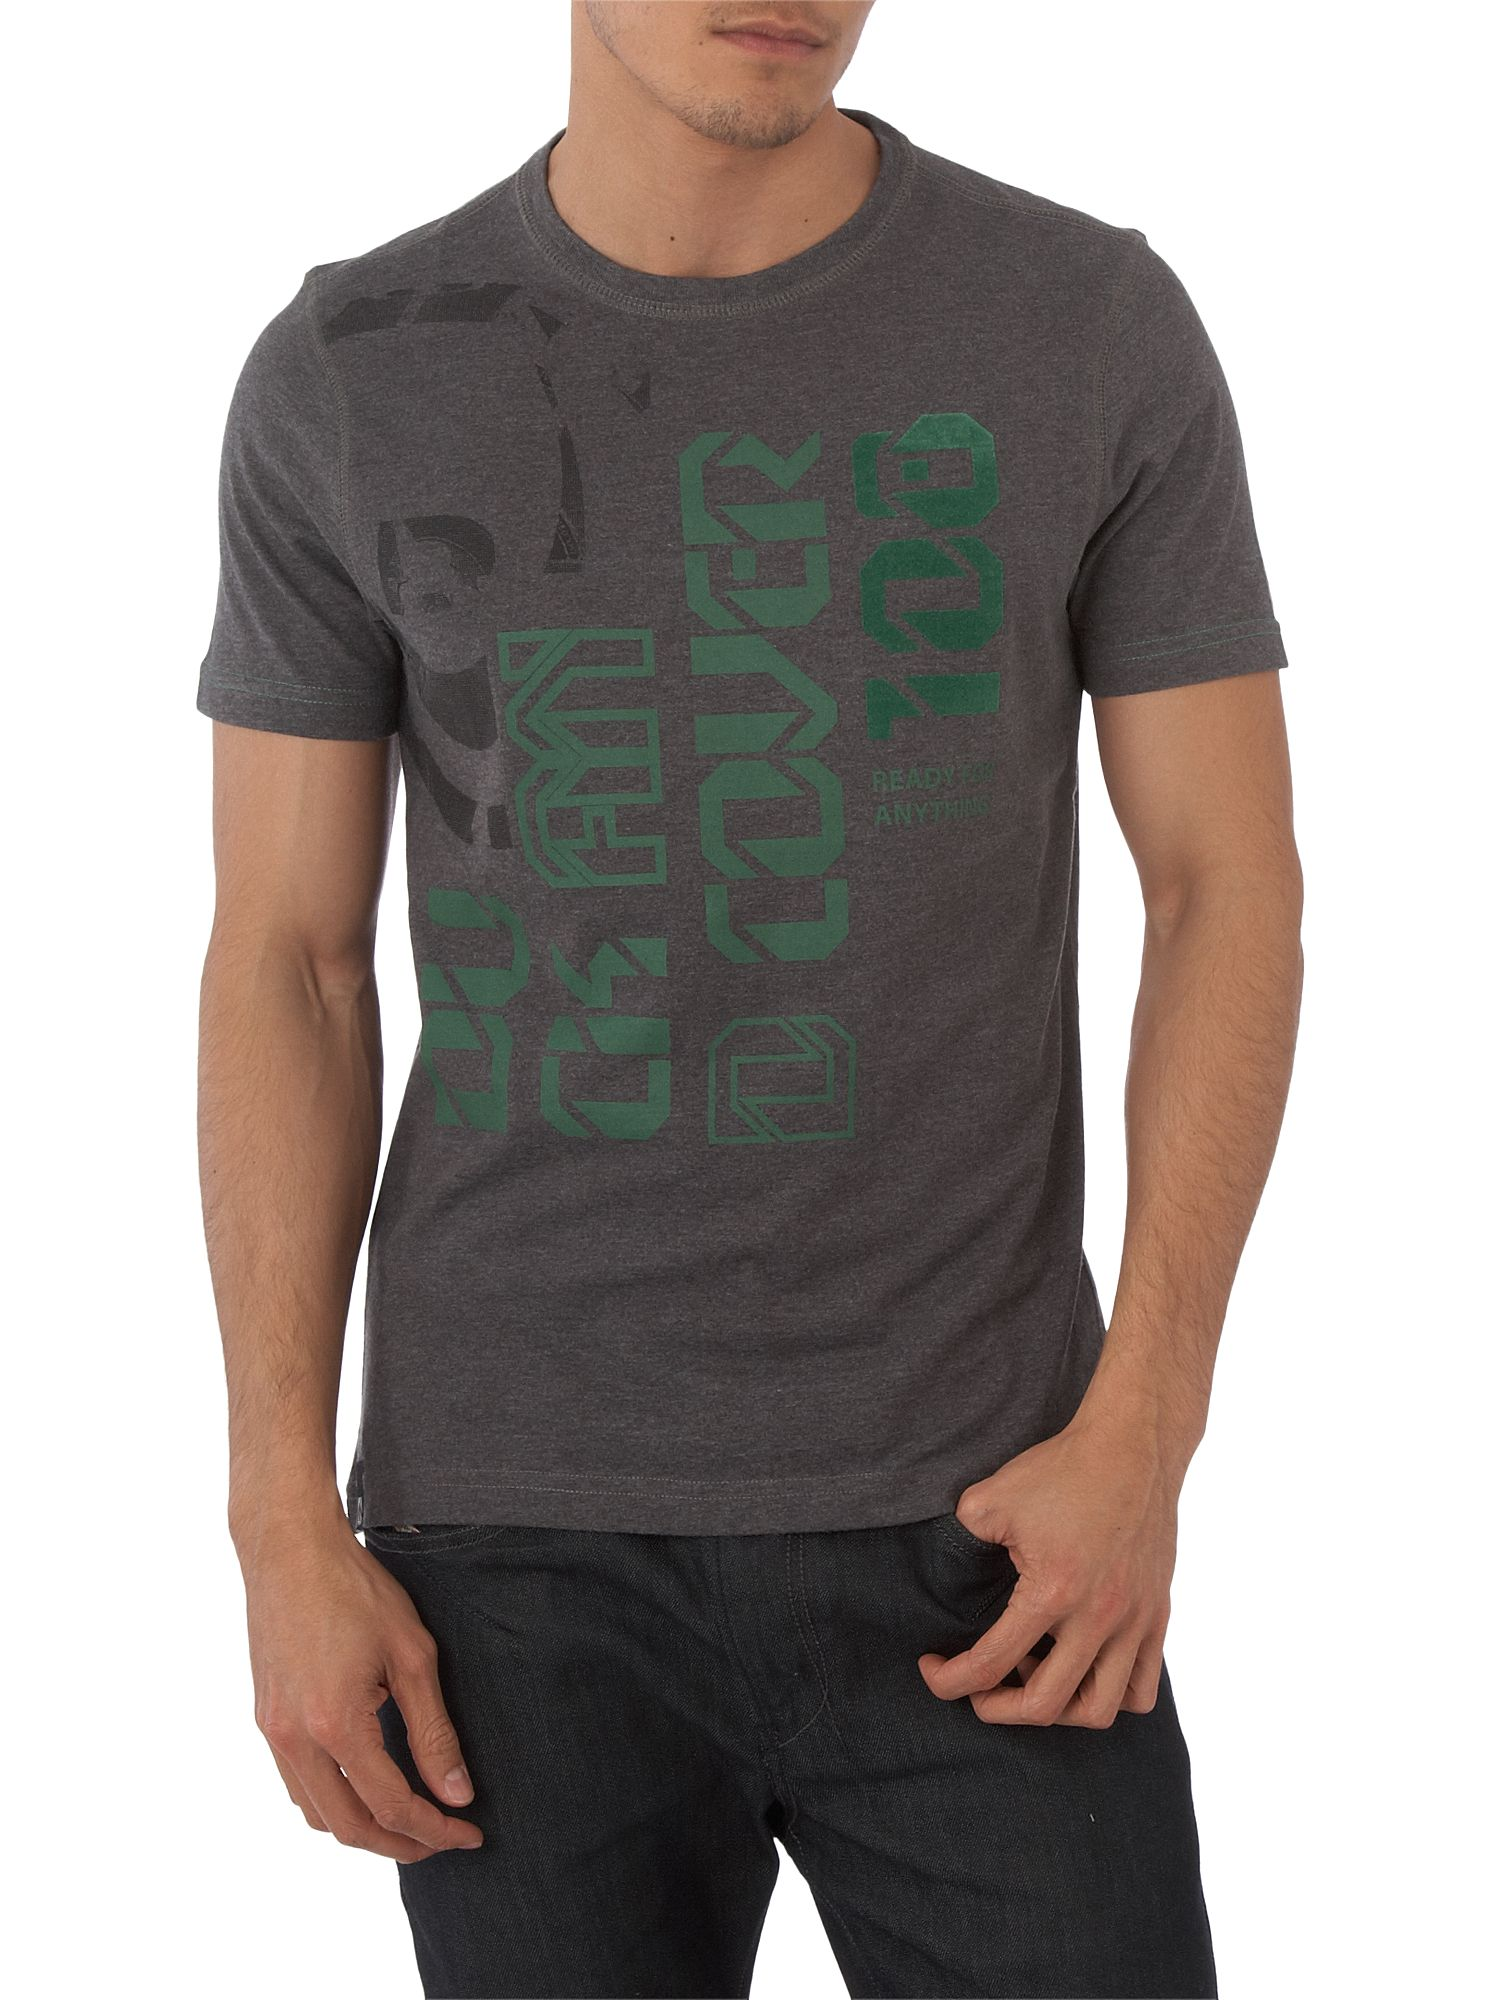 Duck and Cover Digital print T-shirt Dary Grey Marl product image